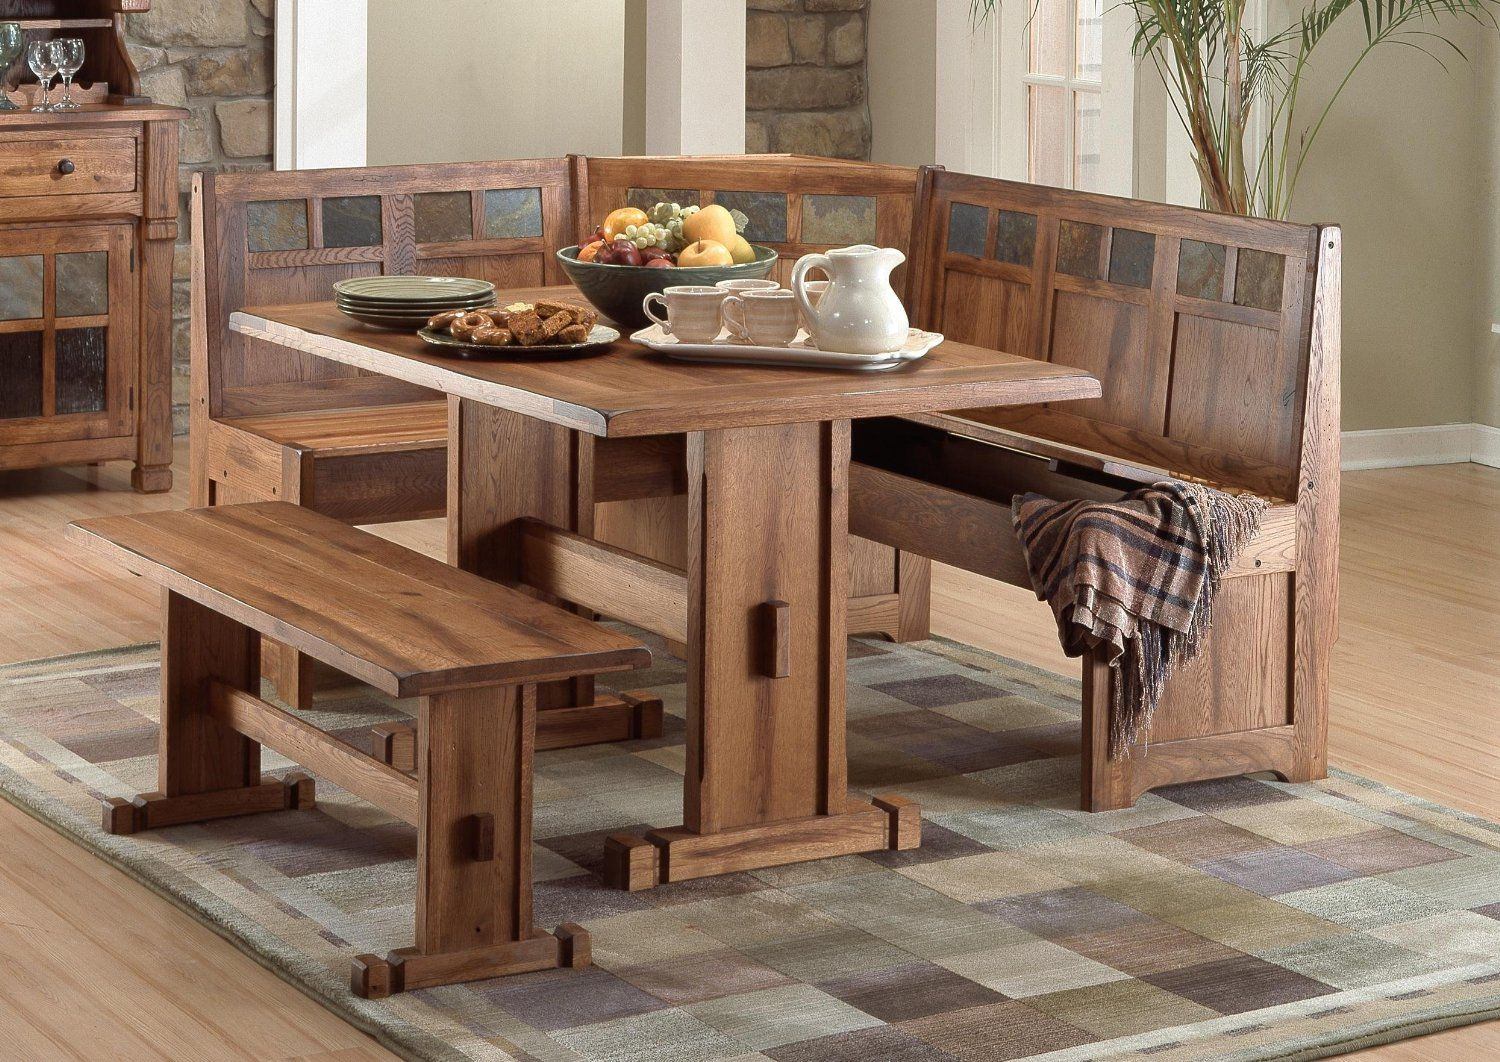 Wood Kitchen Table With Bench Seating Designs Ideas. Wood Kitchen Table With Bench Seating Designs Ideas   Dining Bench